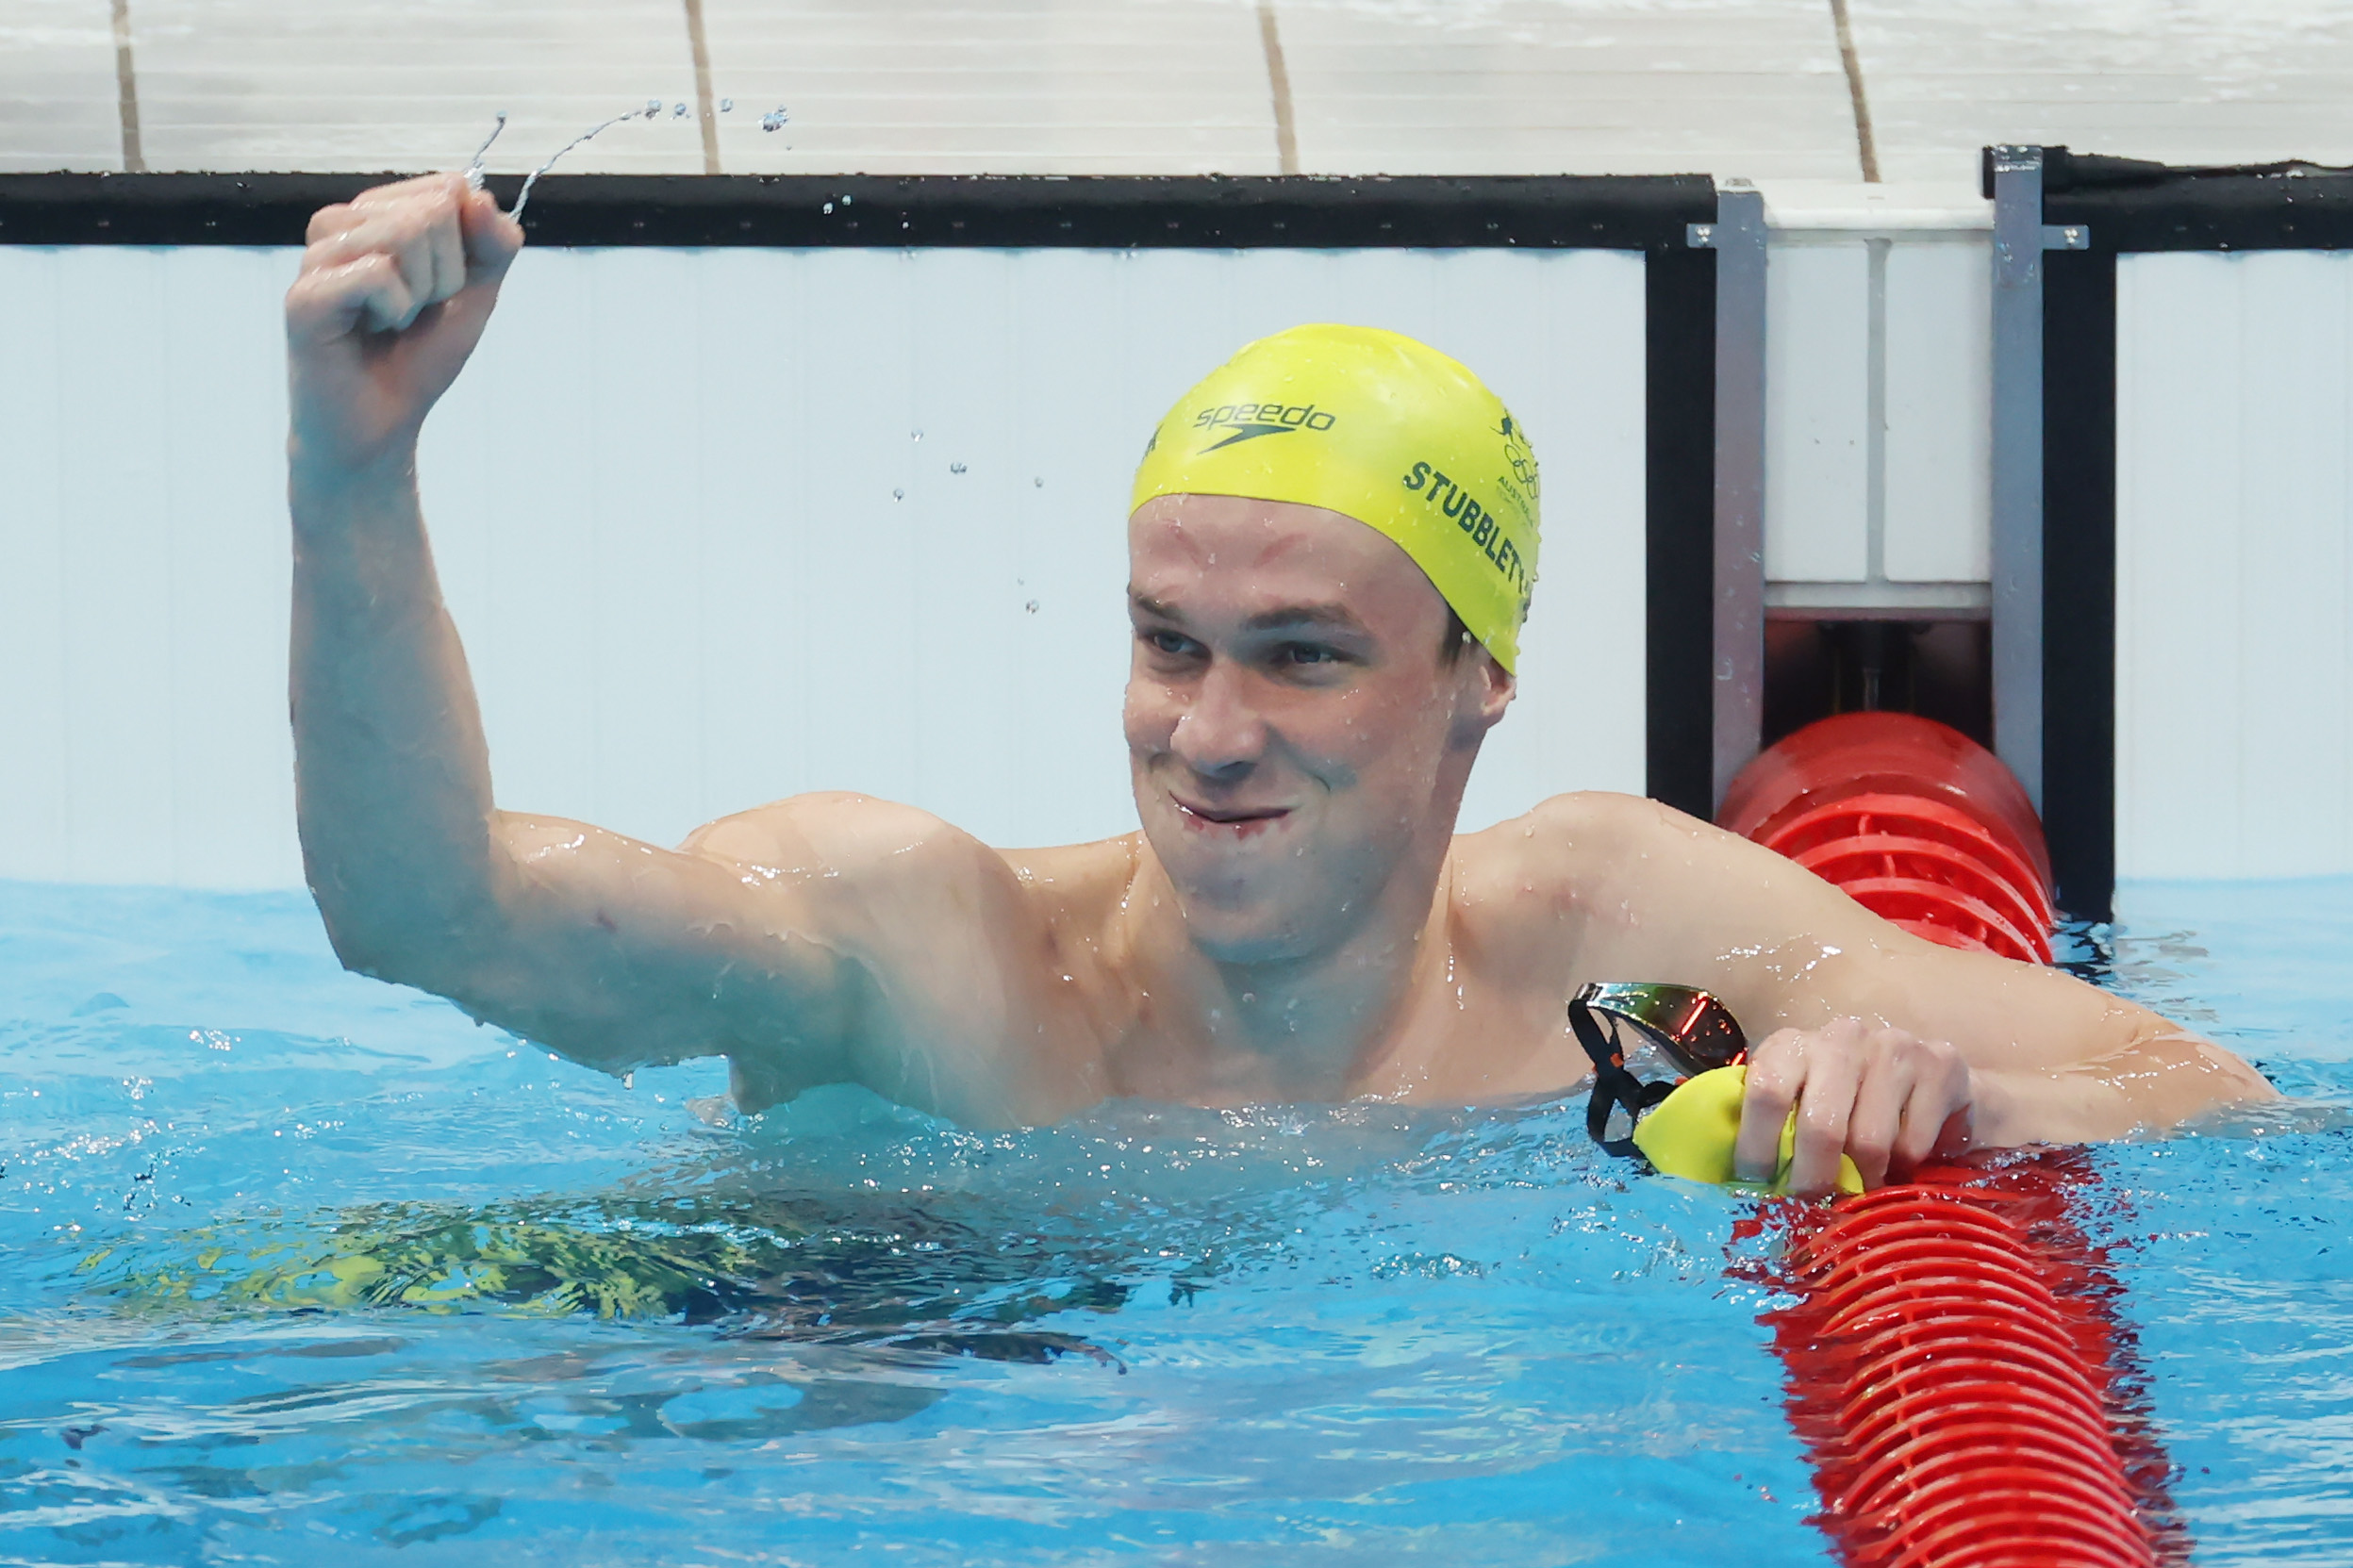 Australia's Izaac Stubblety-Cook reacts after winning gold in the 200-meter breaststroke on July 29.